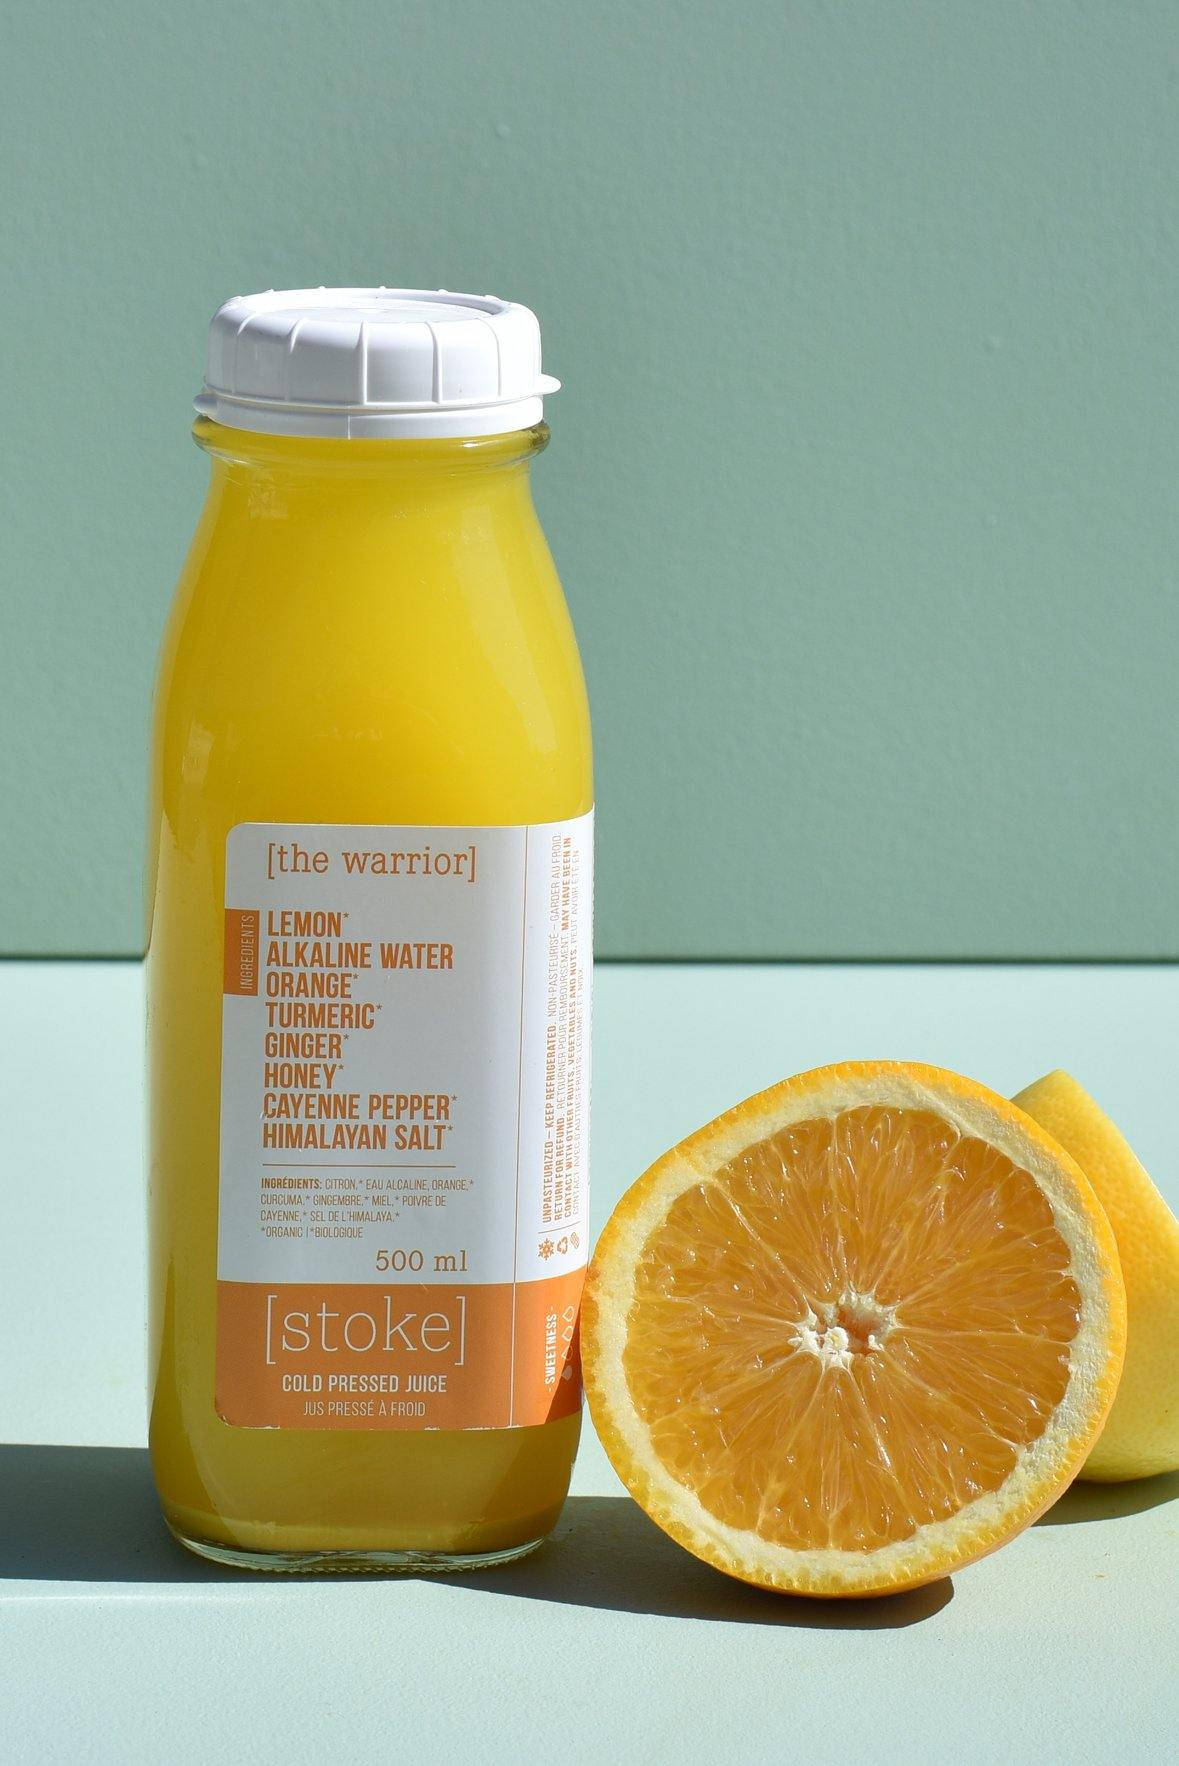 [ the warrior ] cold pressed juice with orange and ginger